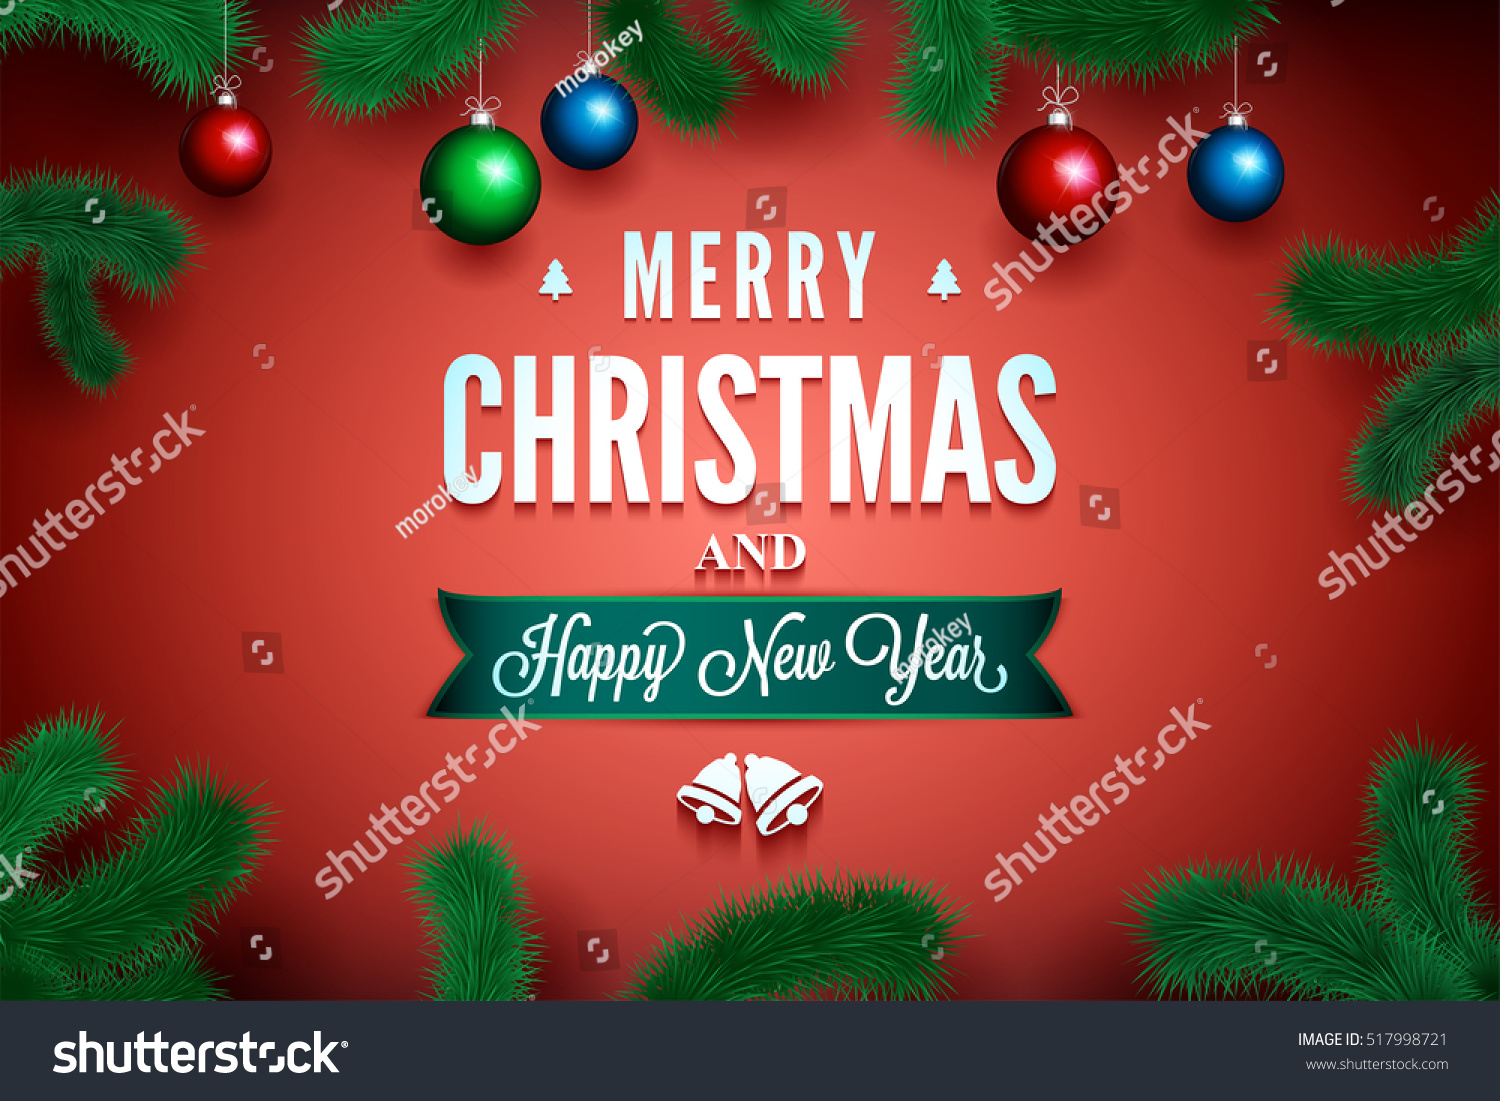 Merry christmas happy new year message stock vector 517998721 merry christmas and happy new year message on the red background with pine branch around m4hsunfo